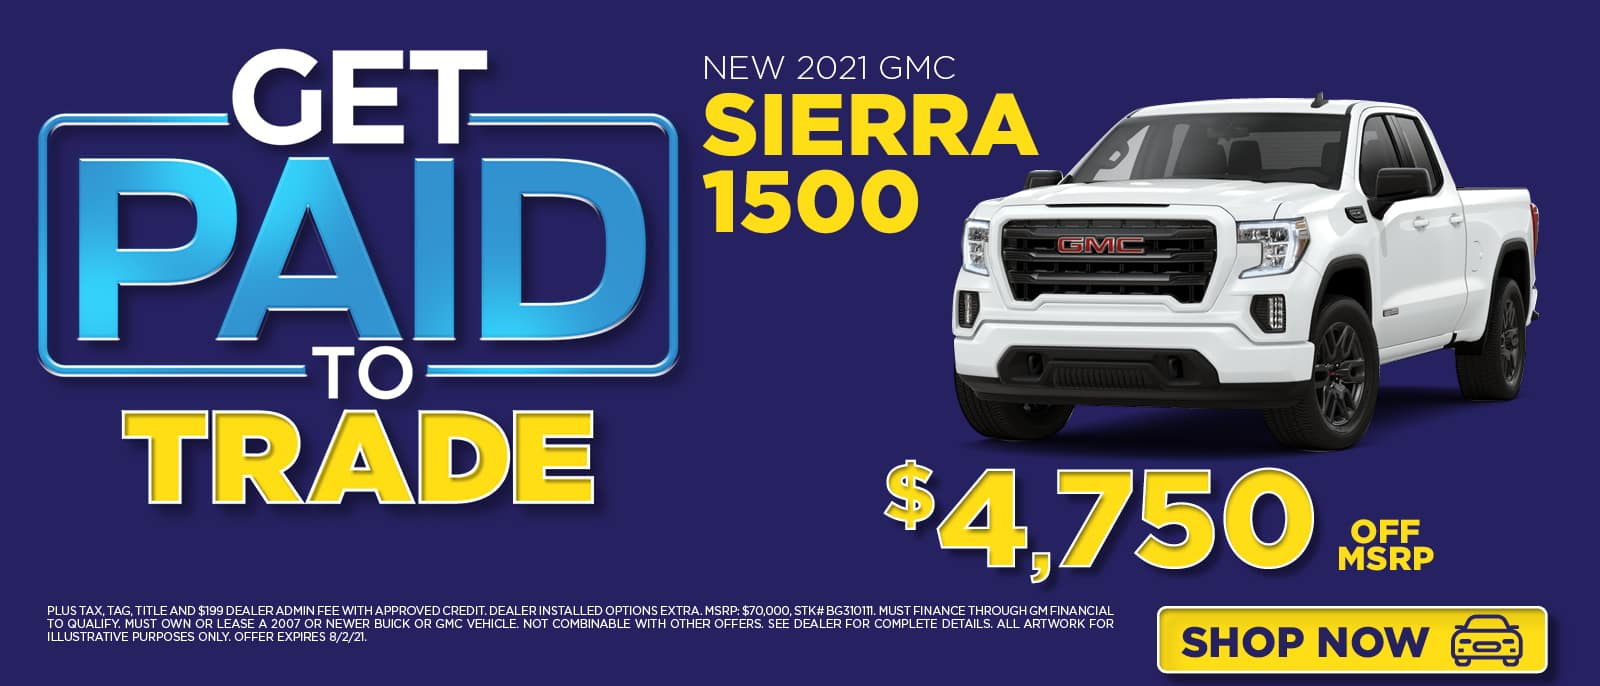 Get Paid to Trade - Sierra